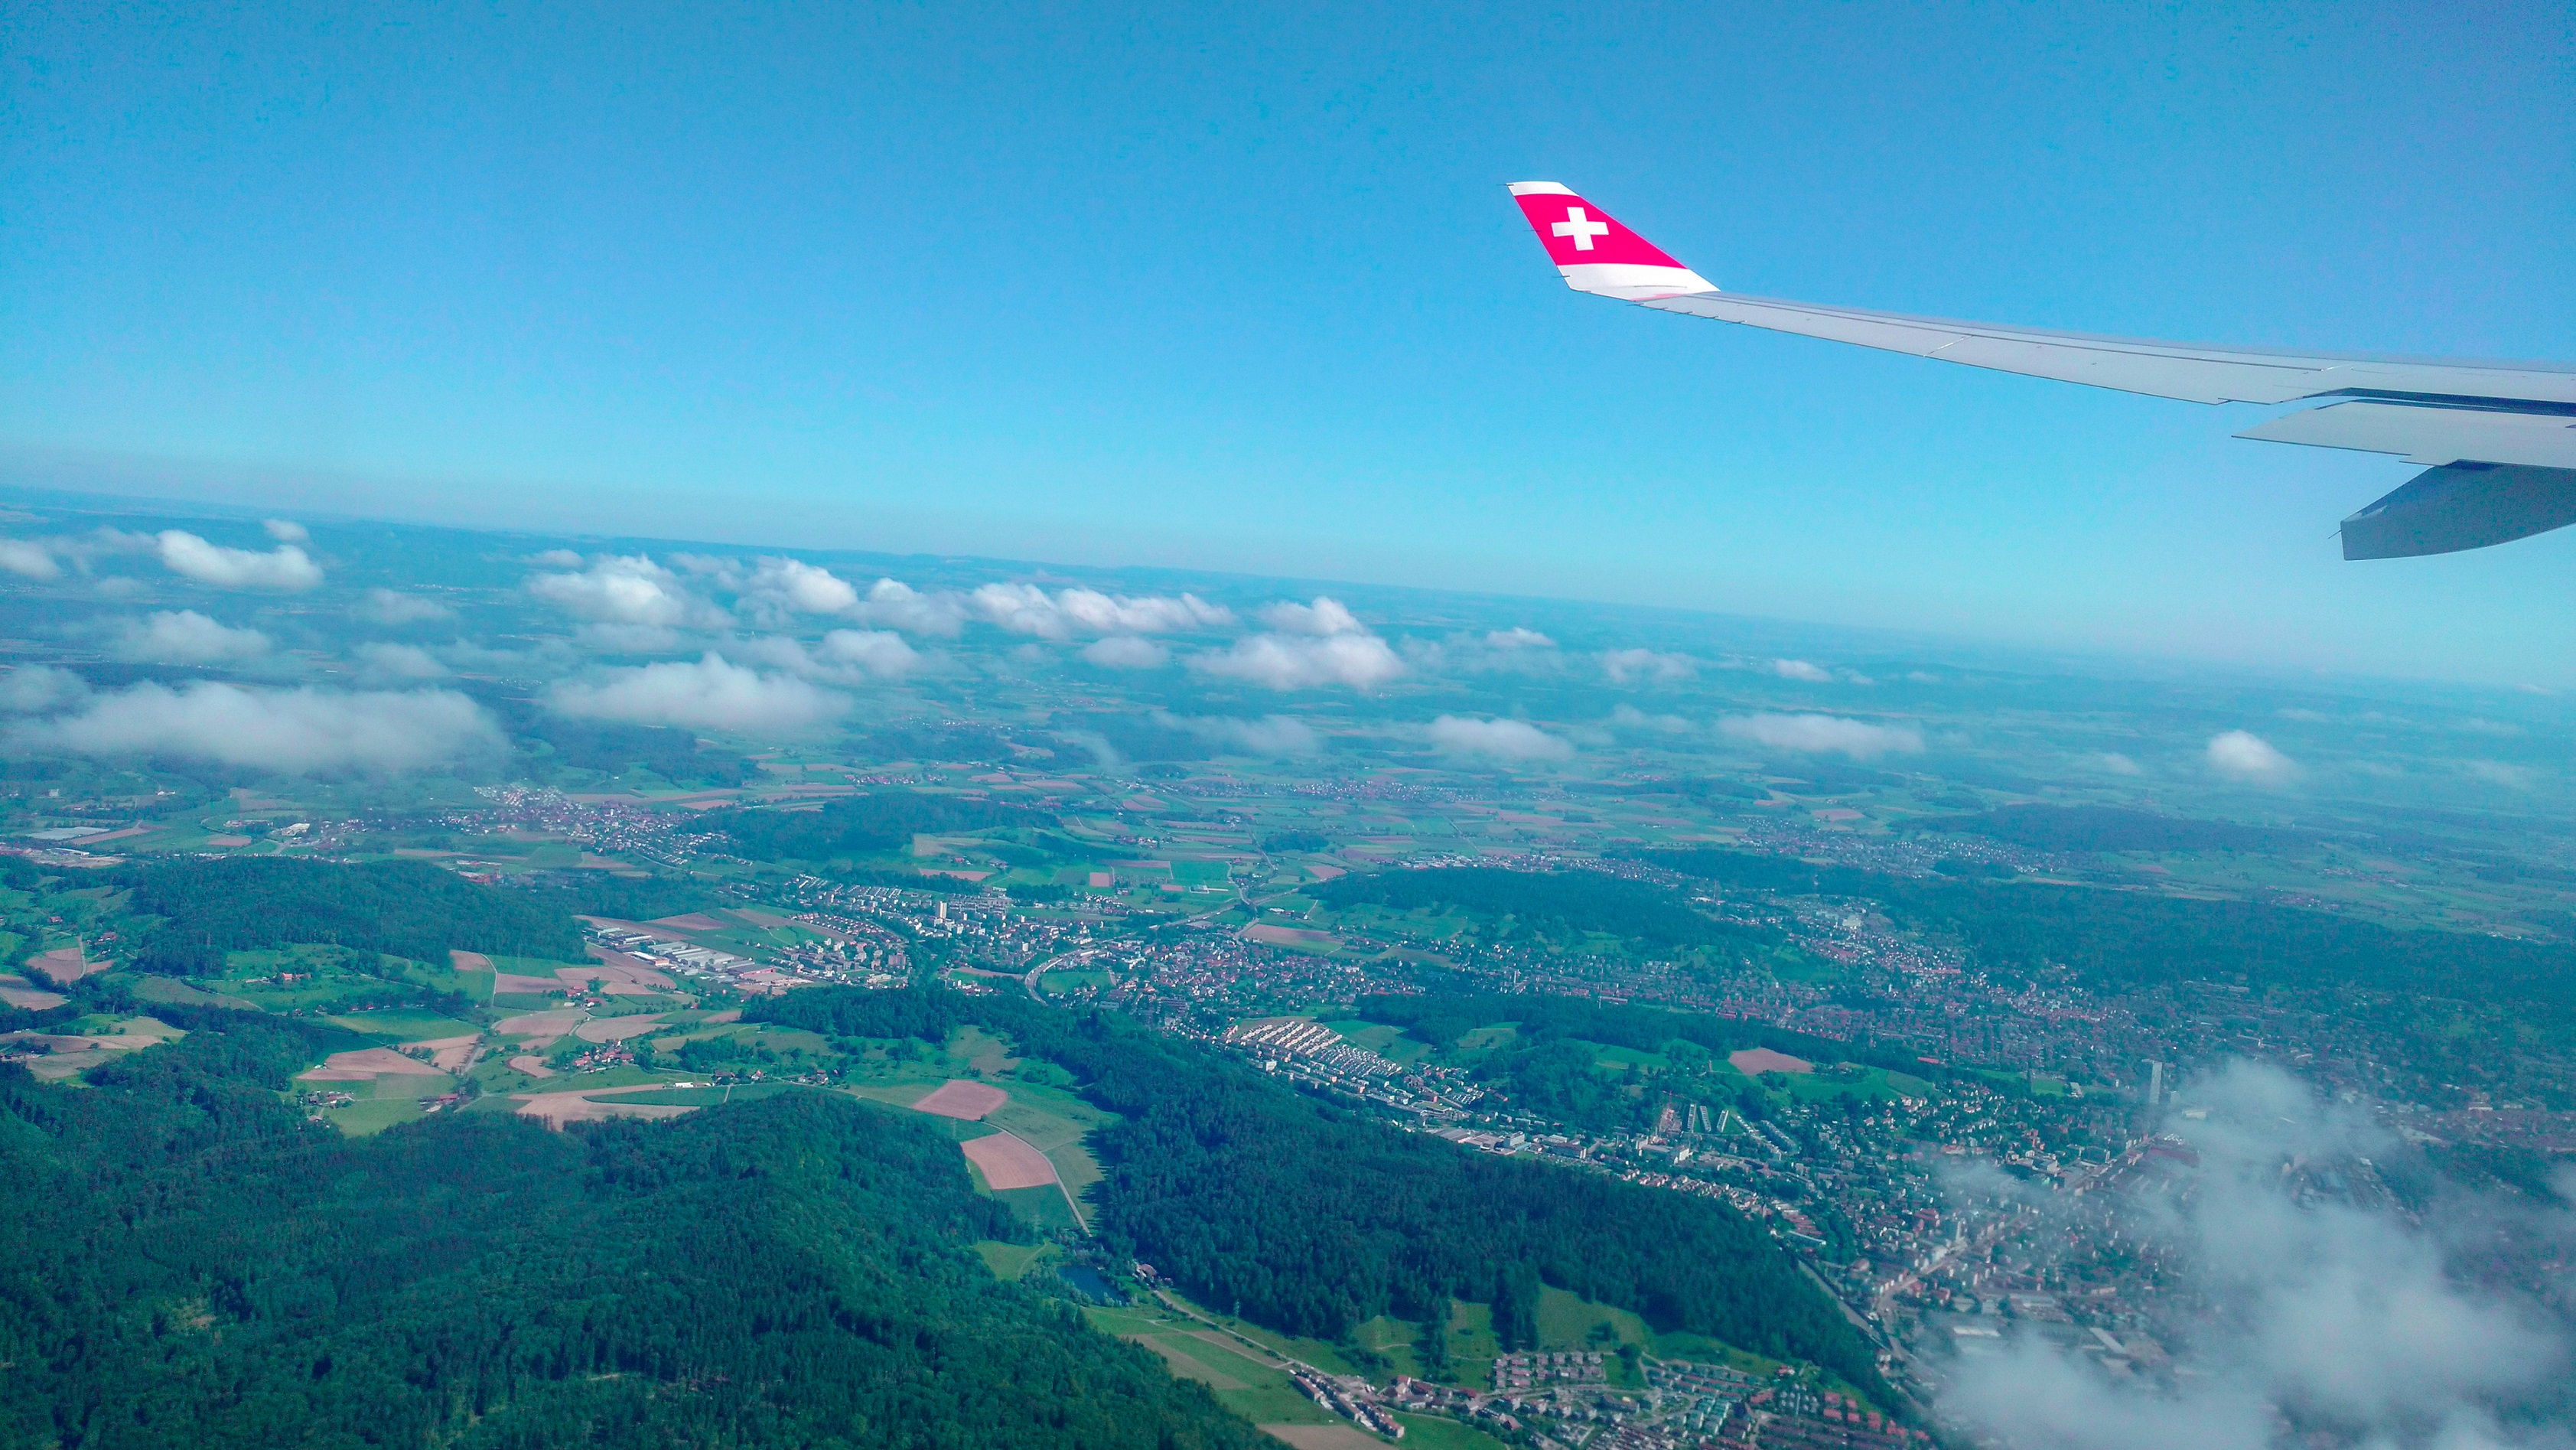 Taking off from Zurich by Swiss International Airlines